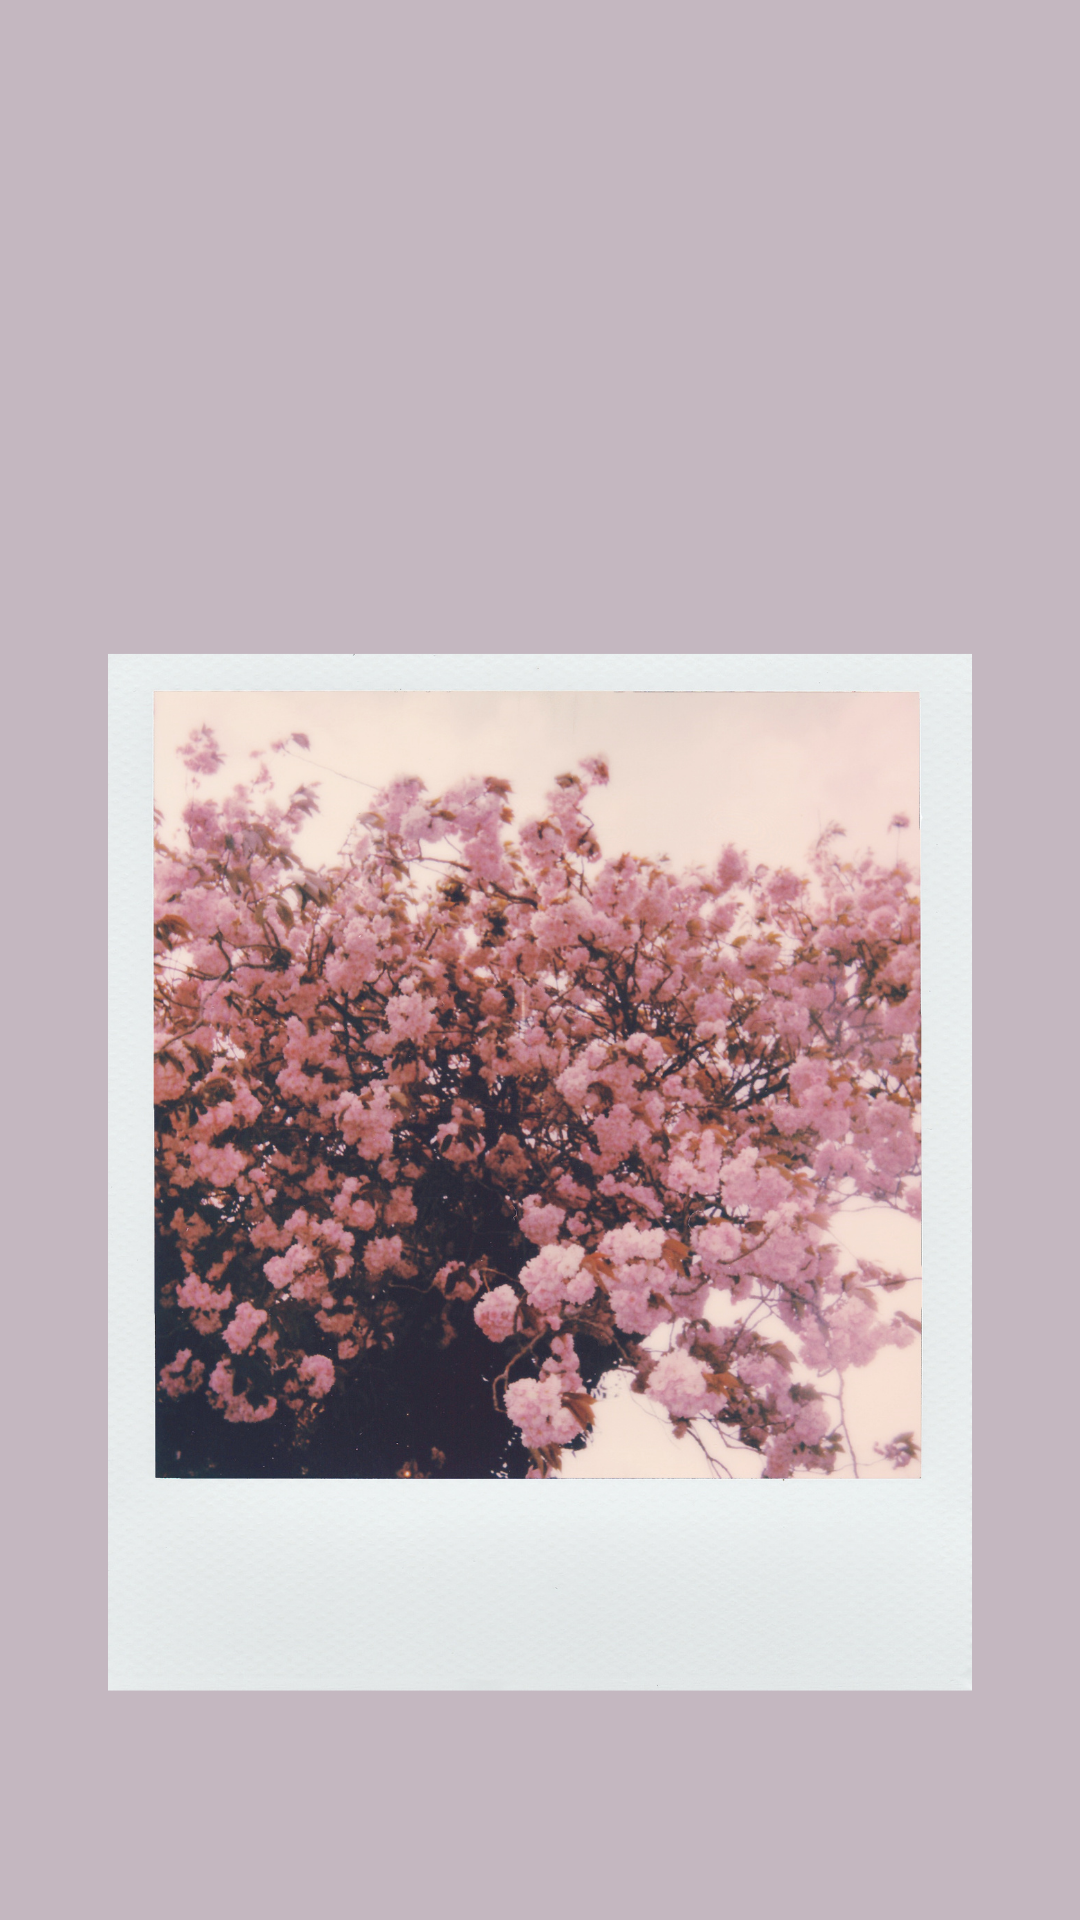 Aesthetic Polaroid Wallpaper for Spring